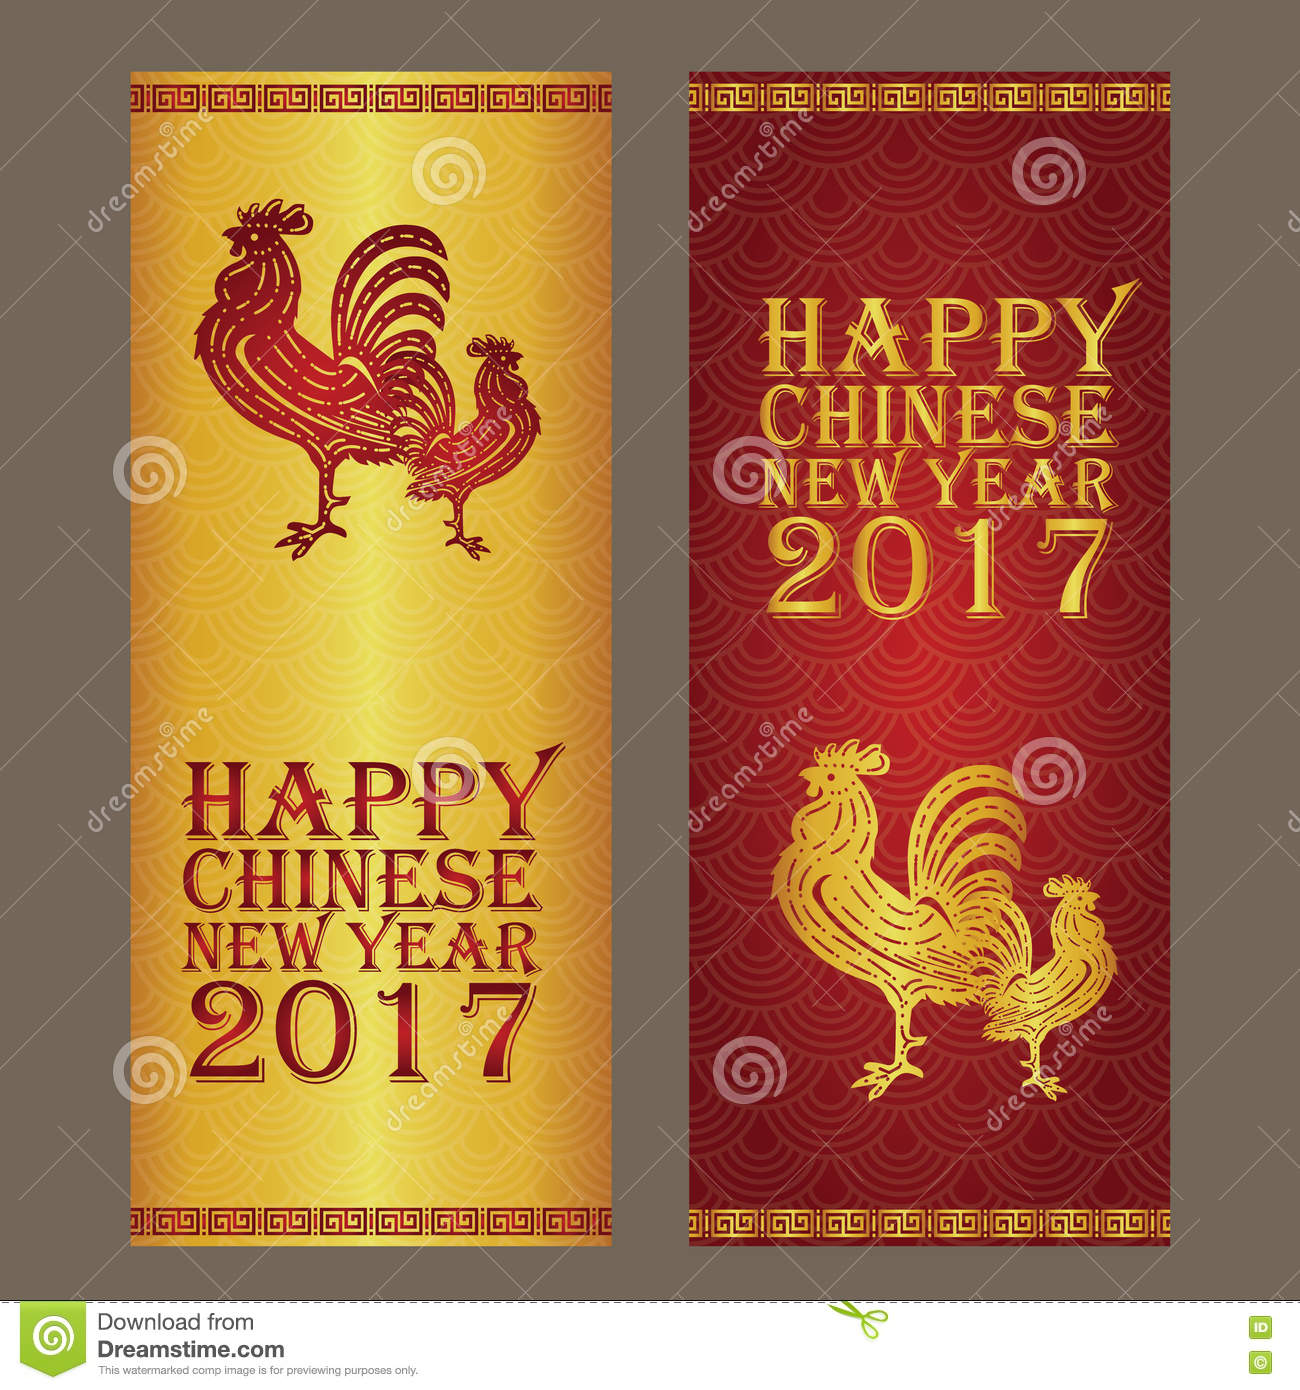 chinese new year banner and card design gold and red background color